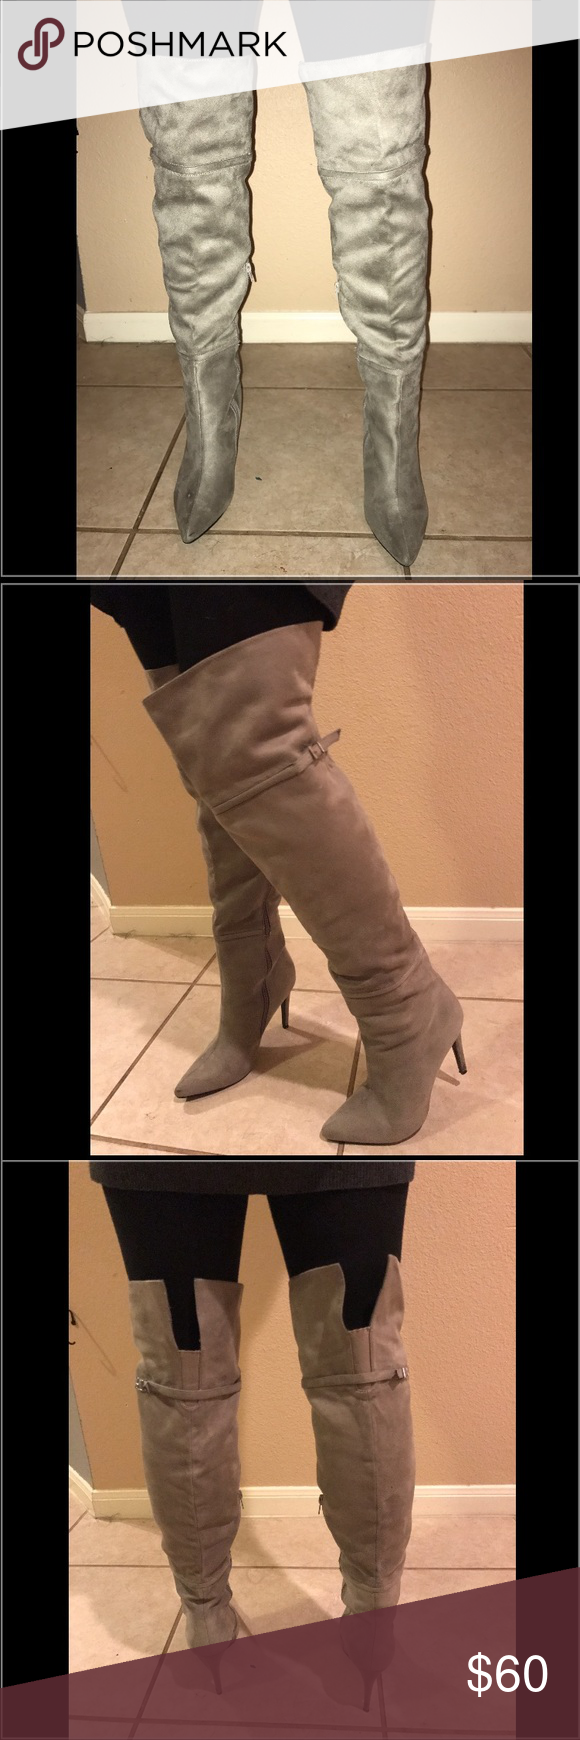 "Brand New Chinese Laundry Over the Knee Boots New Chinese Laundry Center Stage suede over the knee boots bought for $130 heel 3 3/4"" shaft 17 1/2"". Model is 5'2"". Chinese Laundry Shoes Over the Knee Boots"